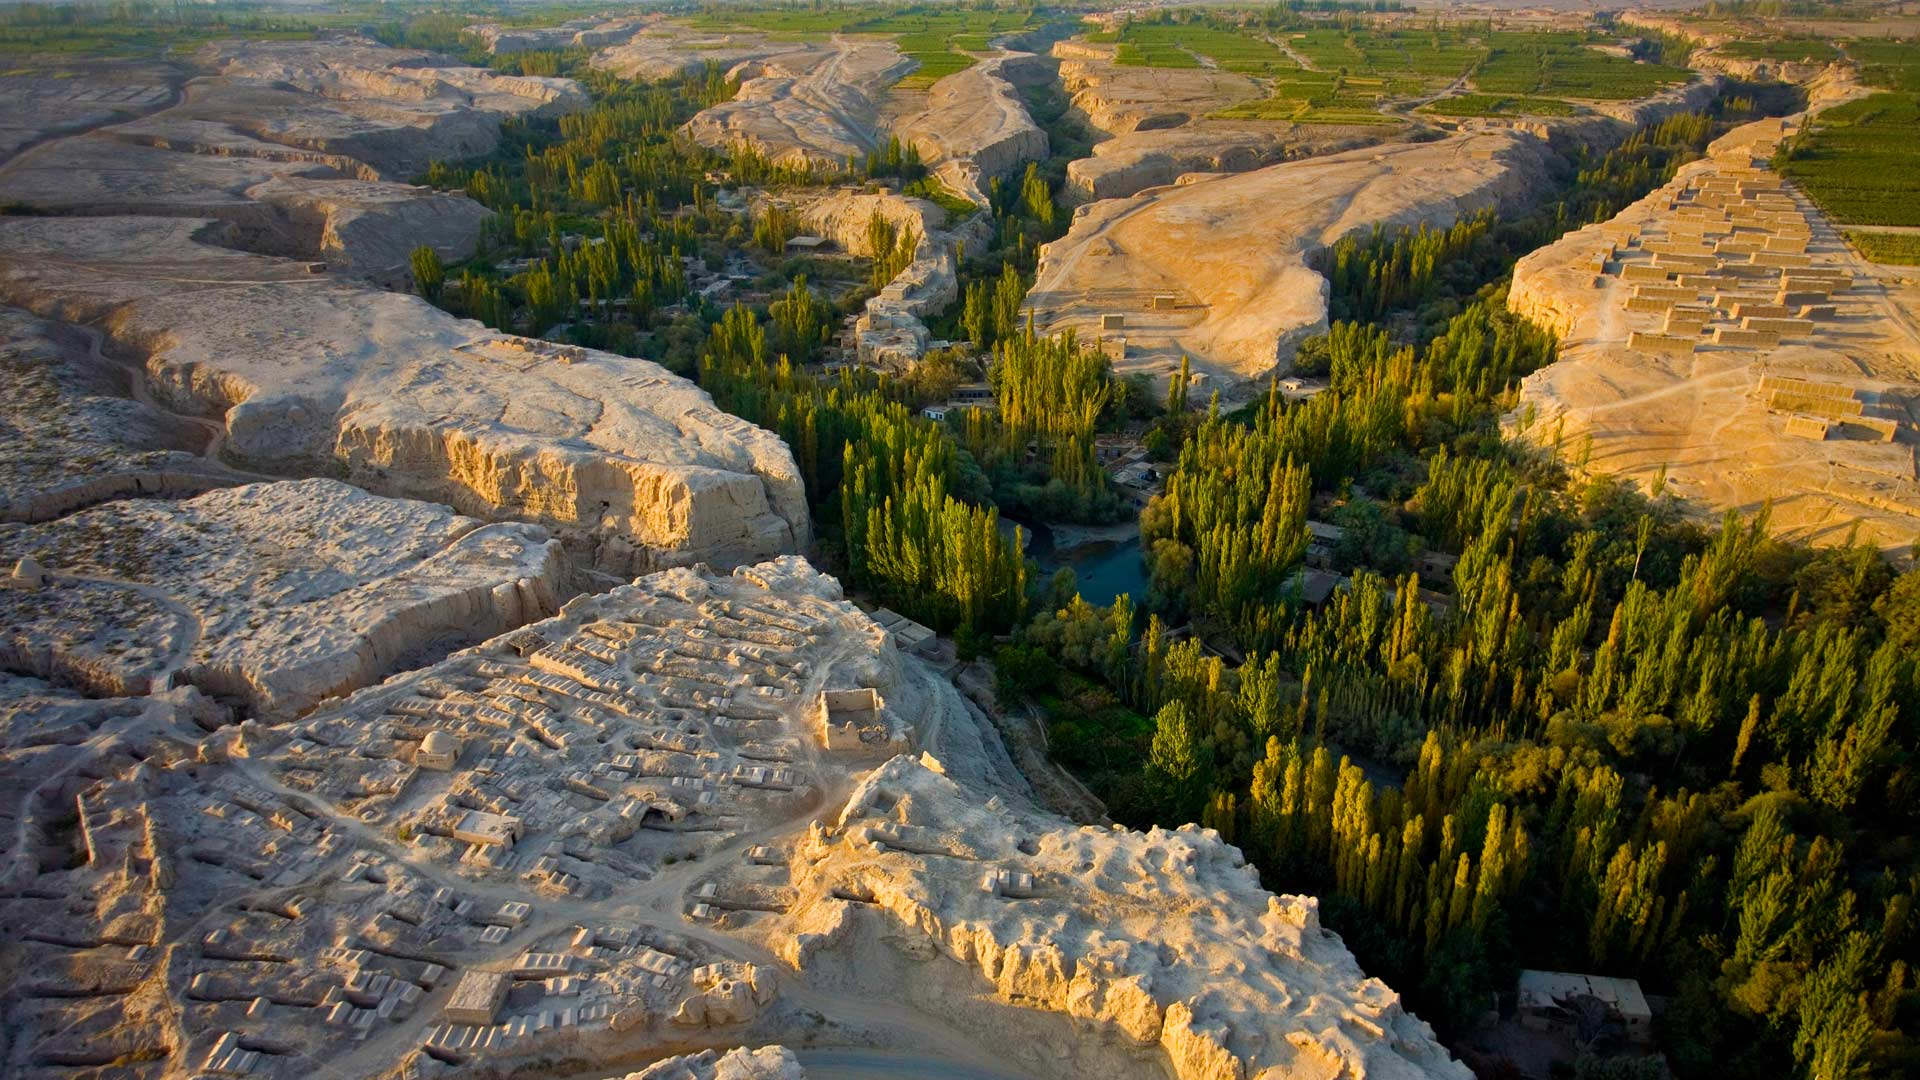 A cemetery overlooking the river gorge in the Turpan Depression, Xinjiang, China (© George Steinmetz/Corbis)